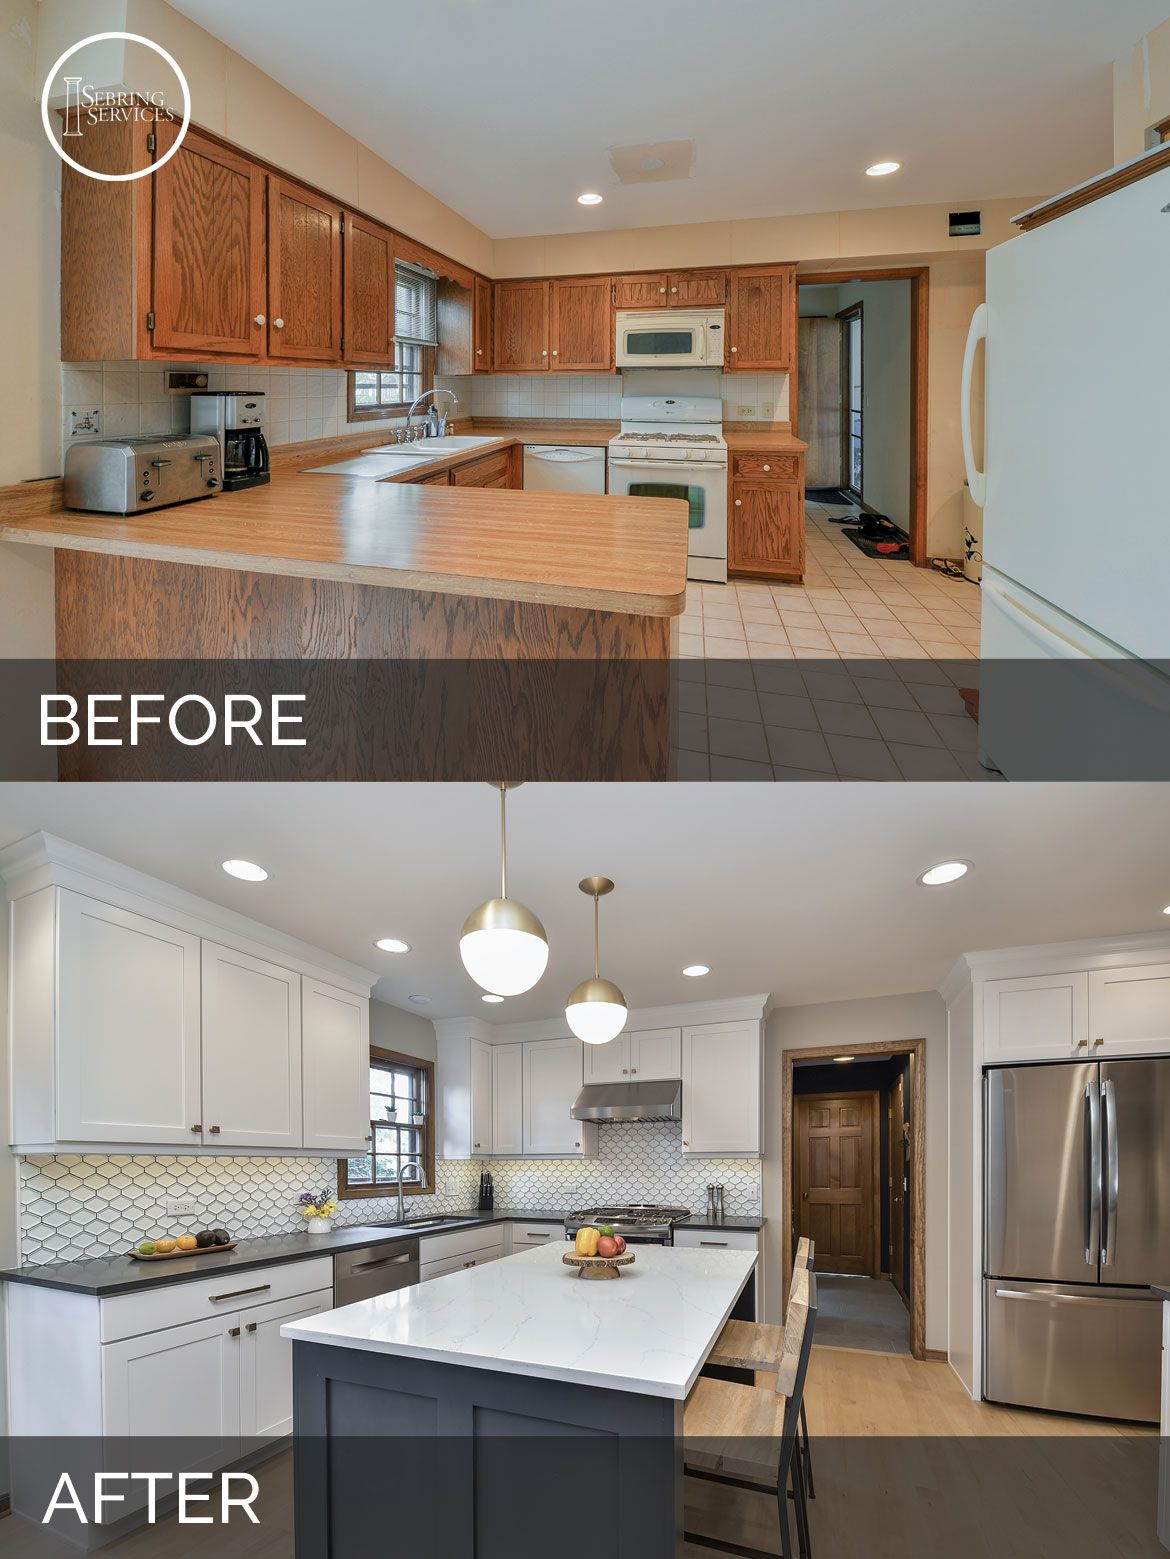 kitchen afters magnificent remodel makeover remodeling amp brilliant renovations with ideas before concept